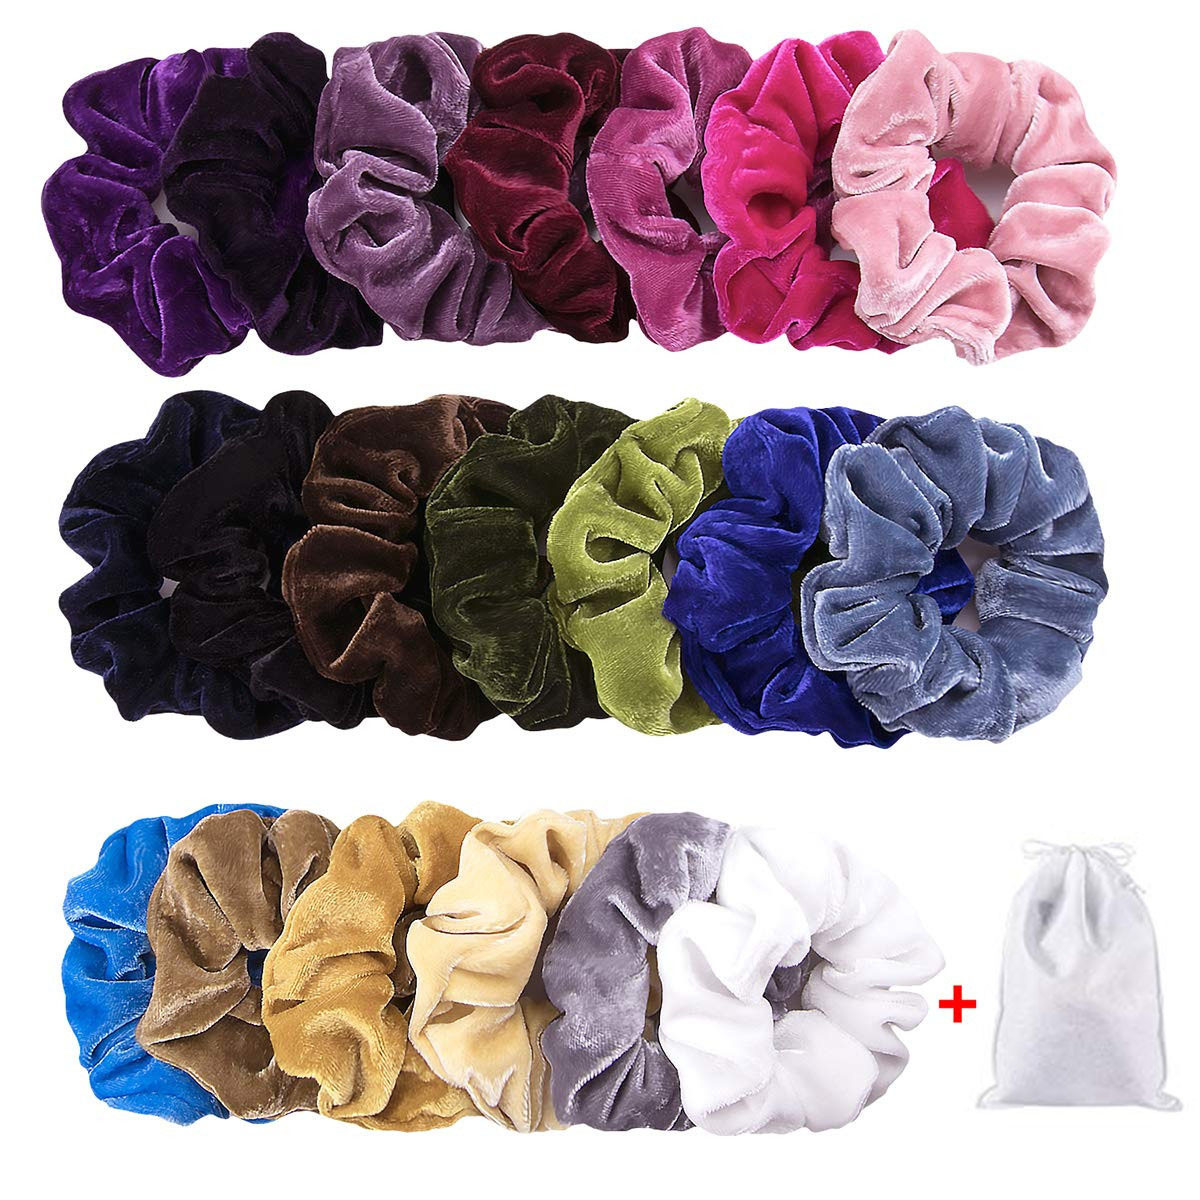 Shimmers Premium Soft Black Velvet Soft Hair Scrunchie Ruffle Band